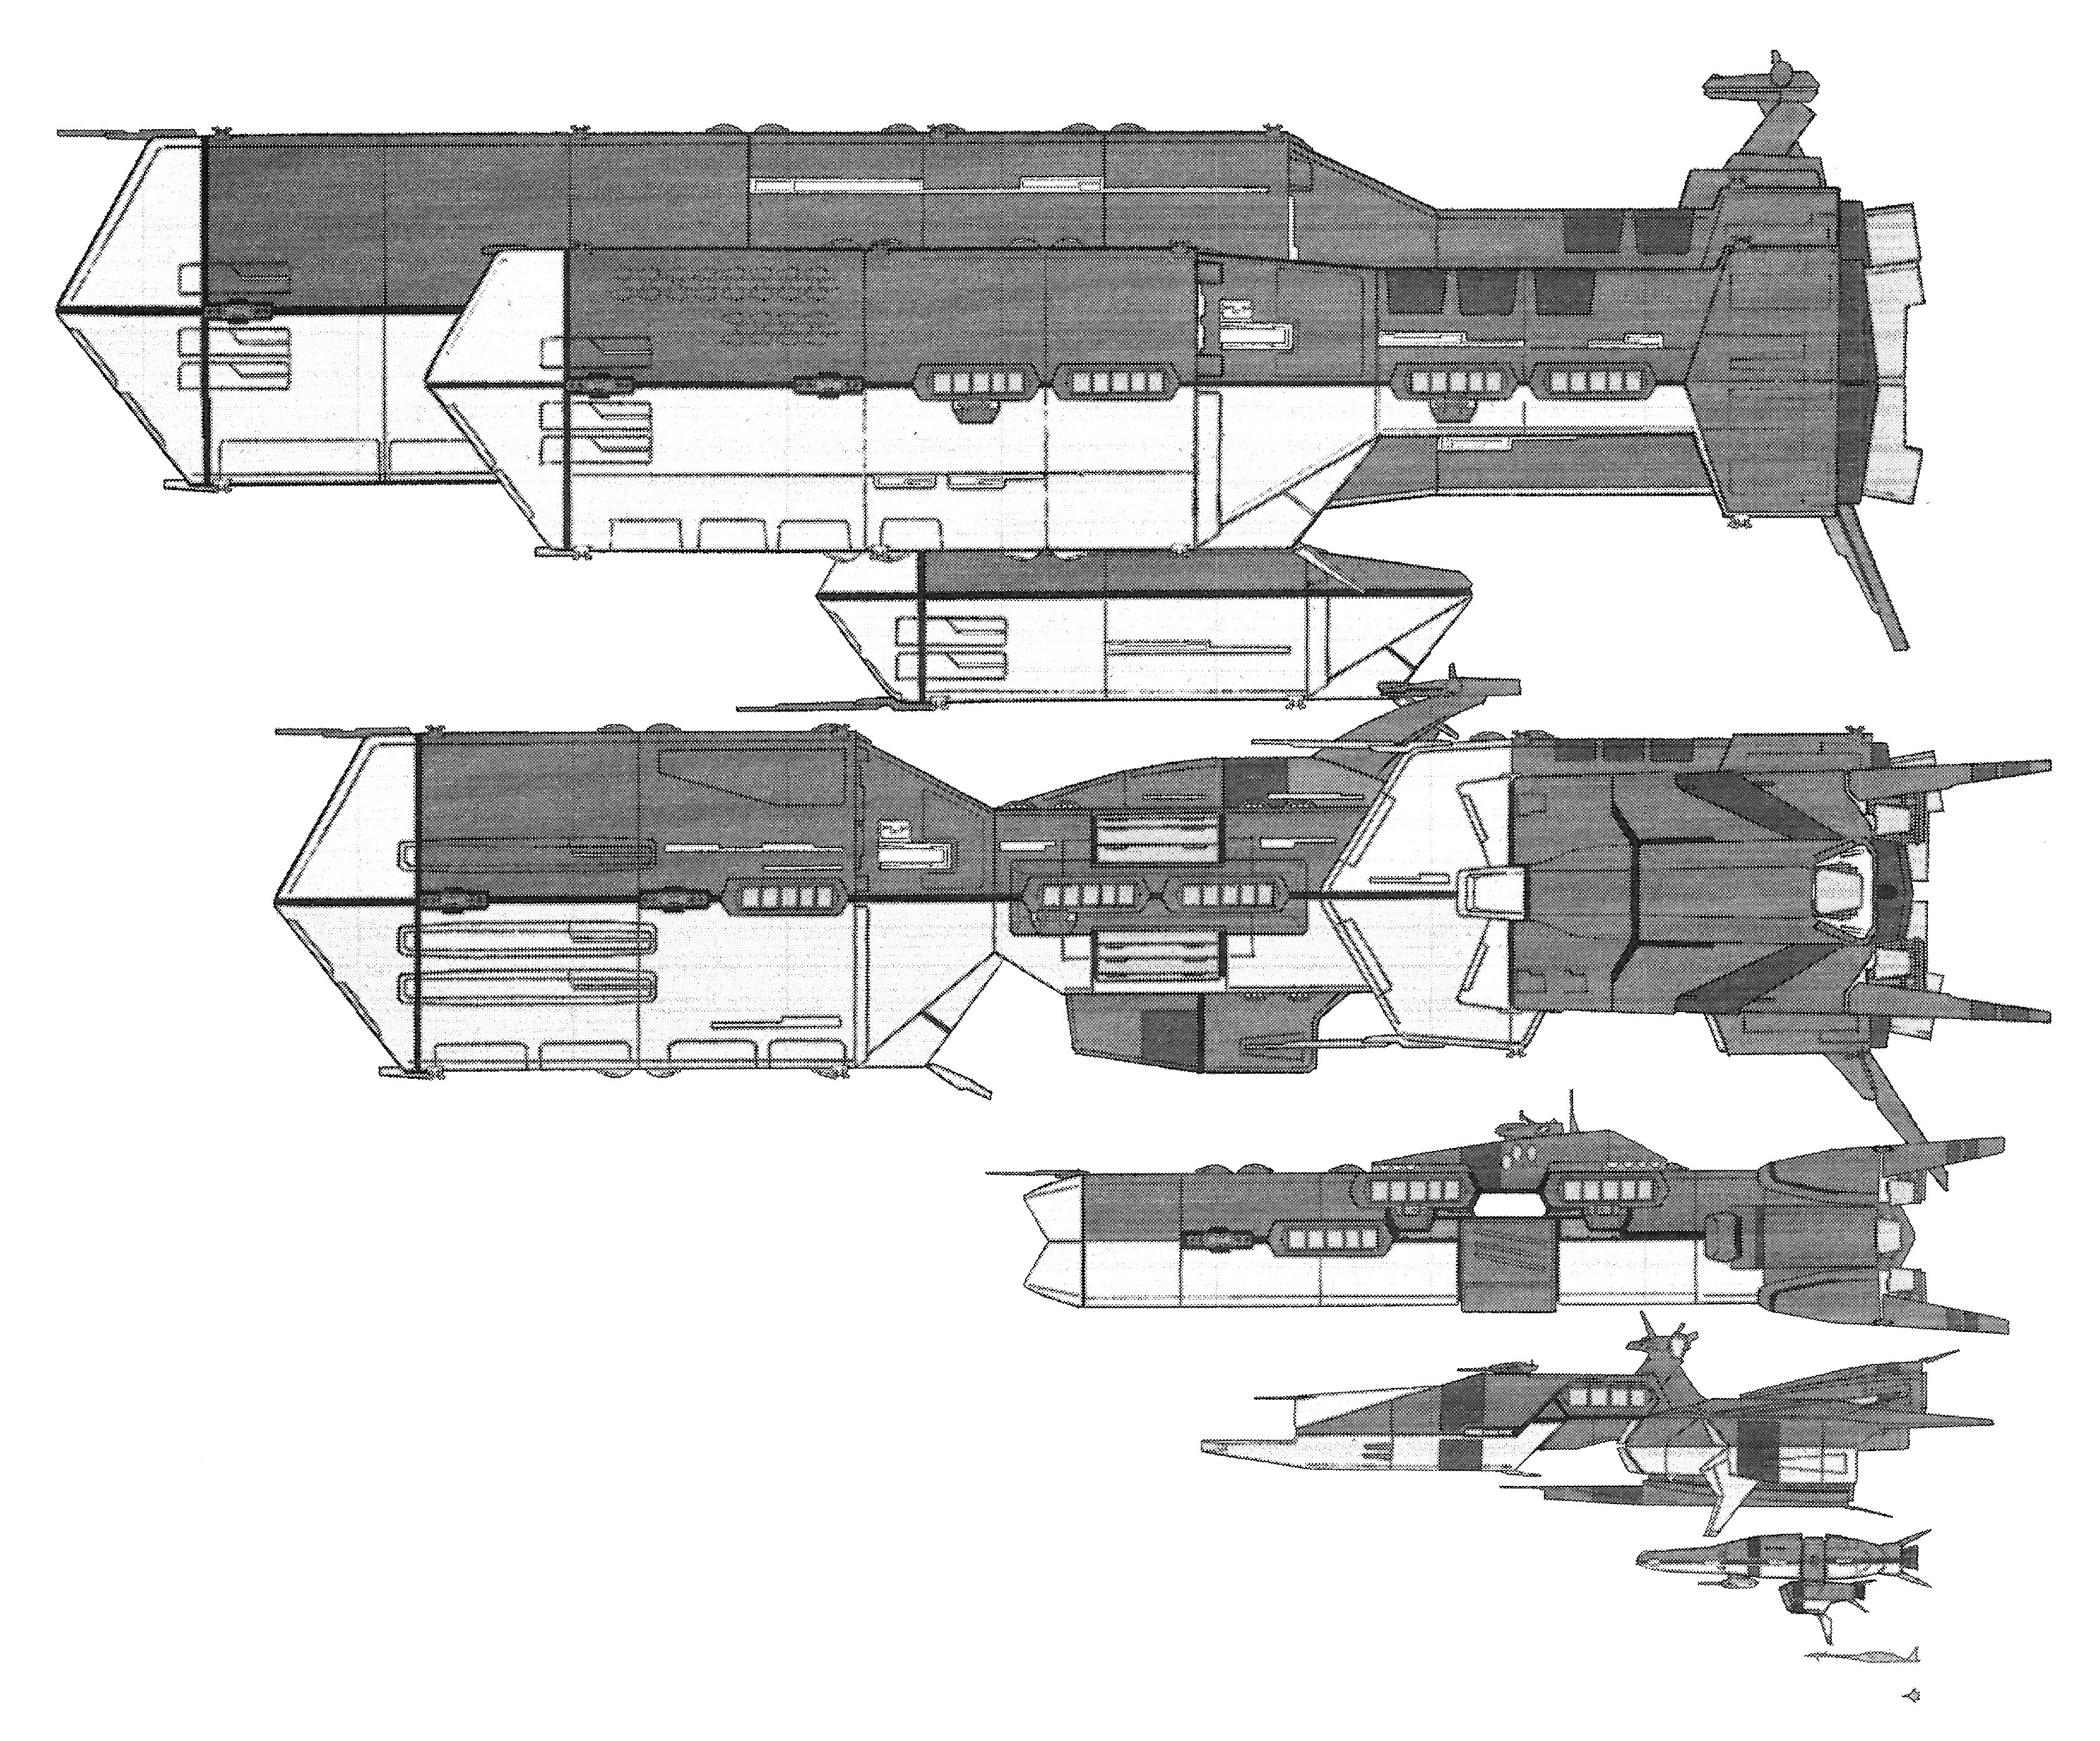 Liberator-class Super Dimensional Battlefortress refit 9